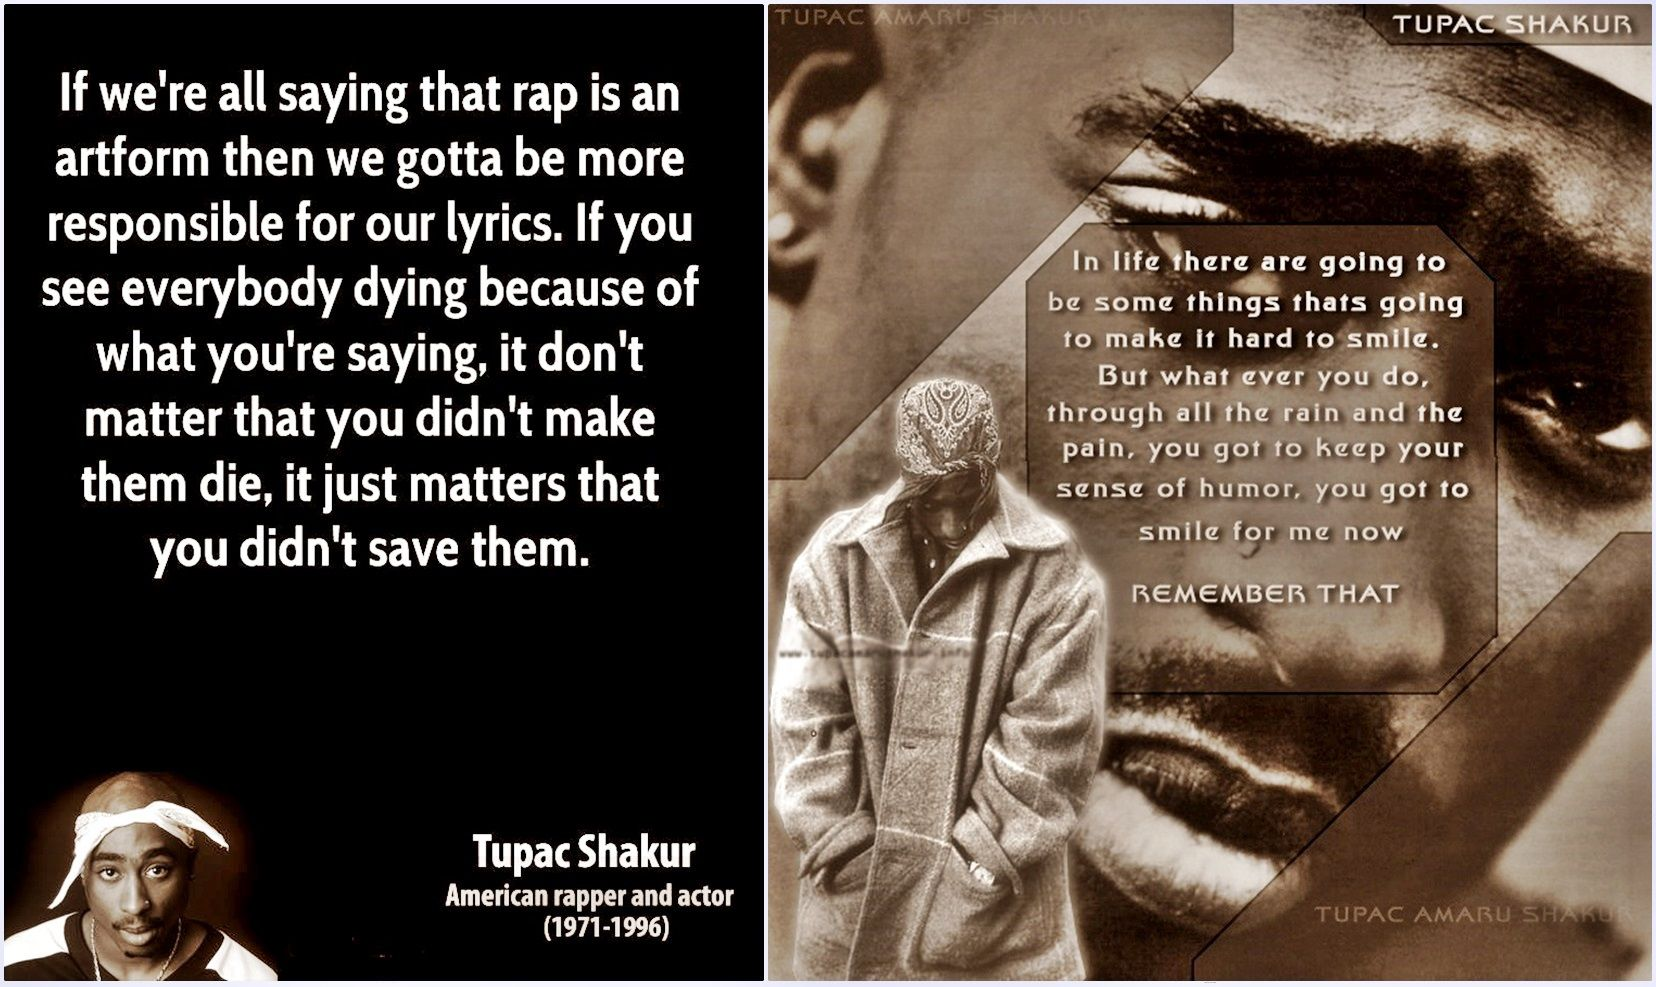 famous quotes tupac amaru shakur Pin Like That Youll Love This on Pinterest